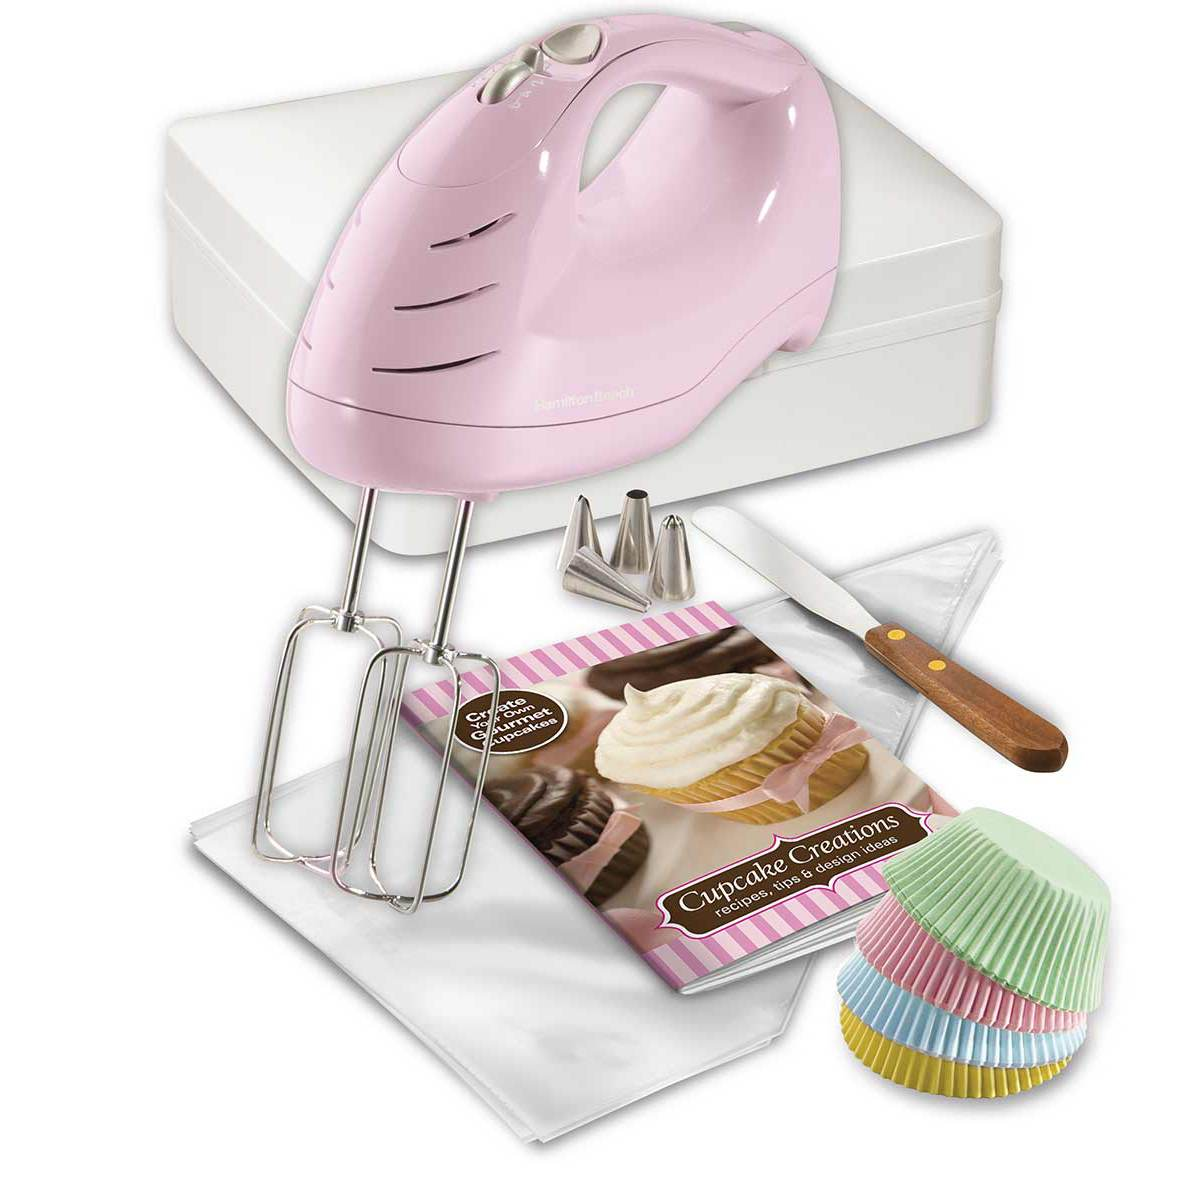 Cupcake Creations Hand Mixer with Decorating Kit Storage Case